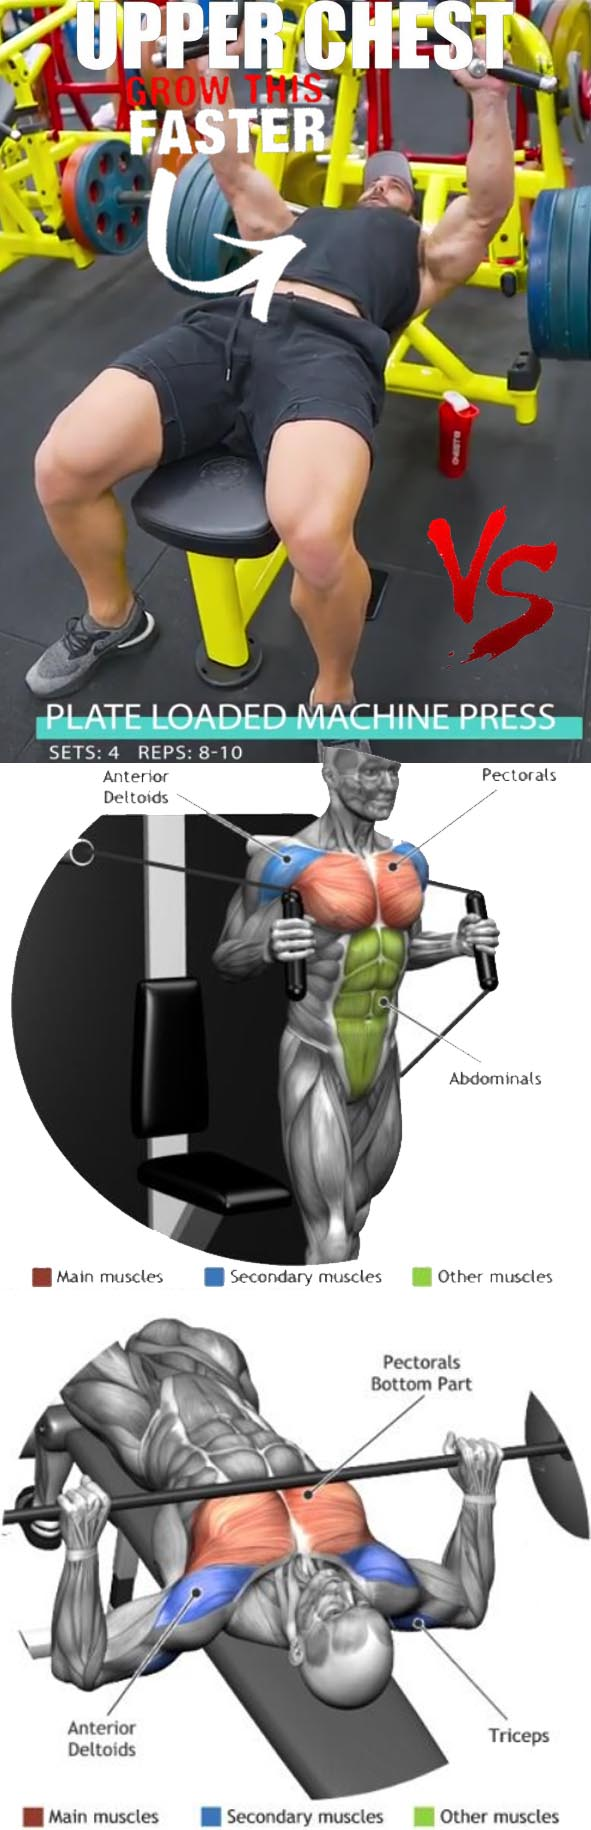 How to Do a Seated Chest Press